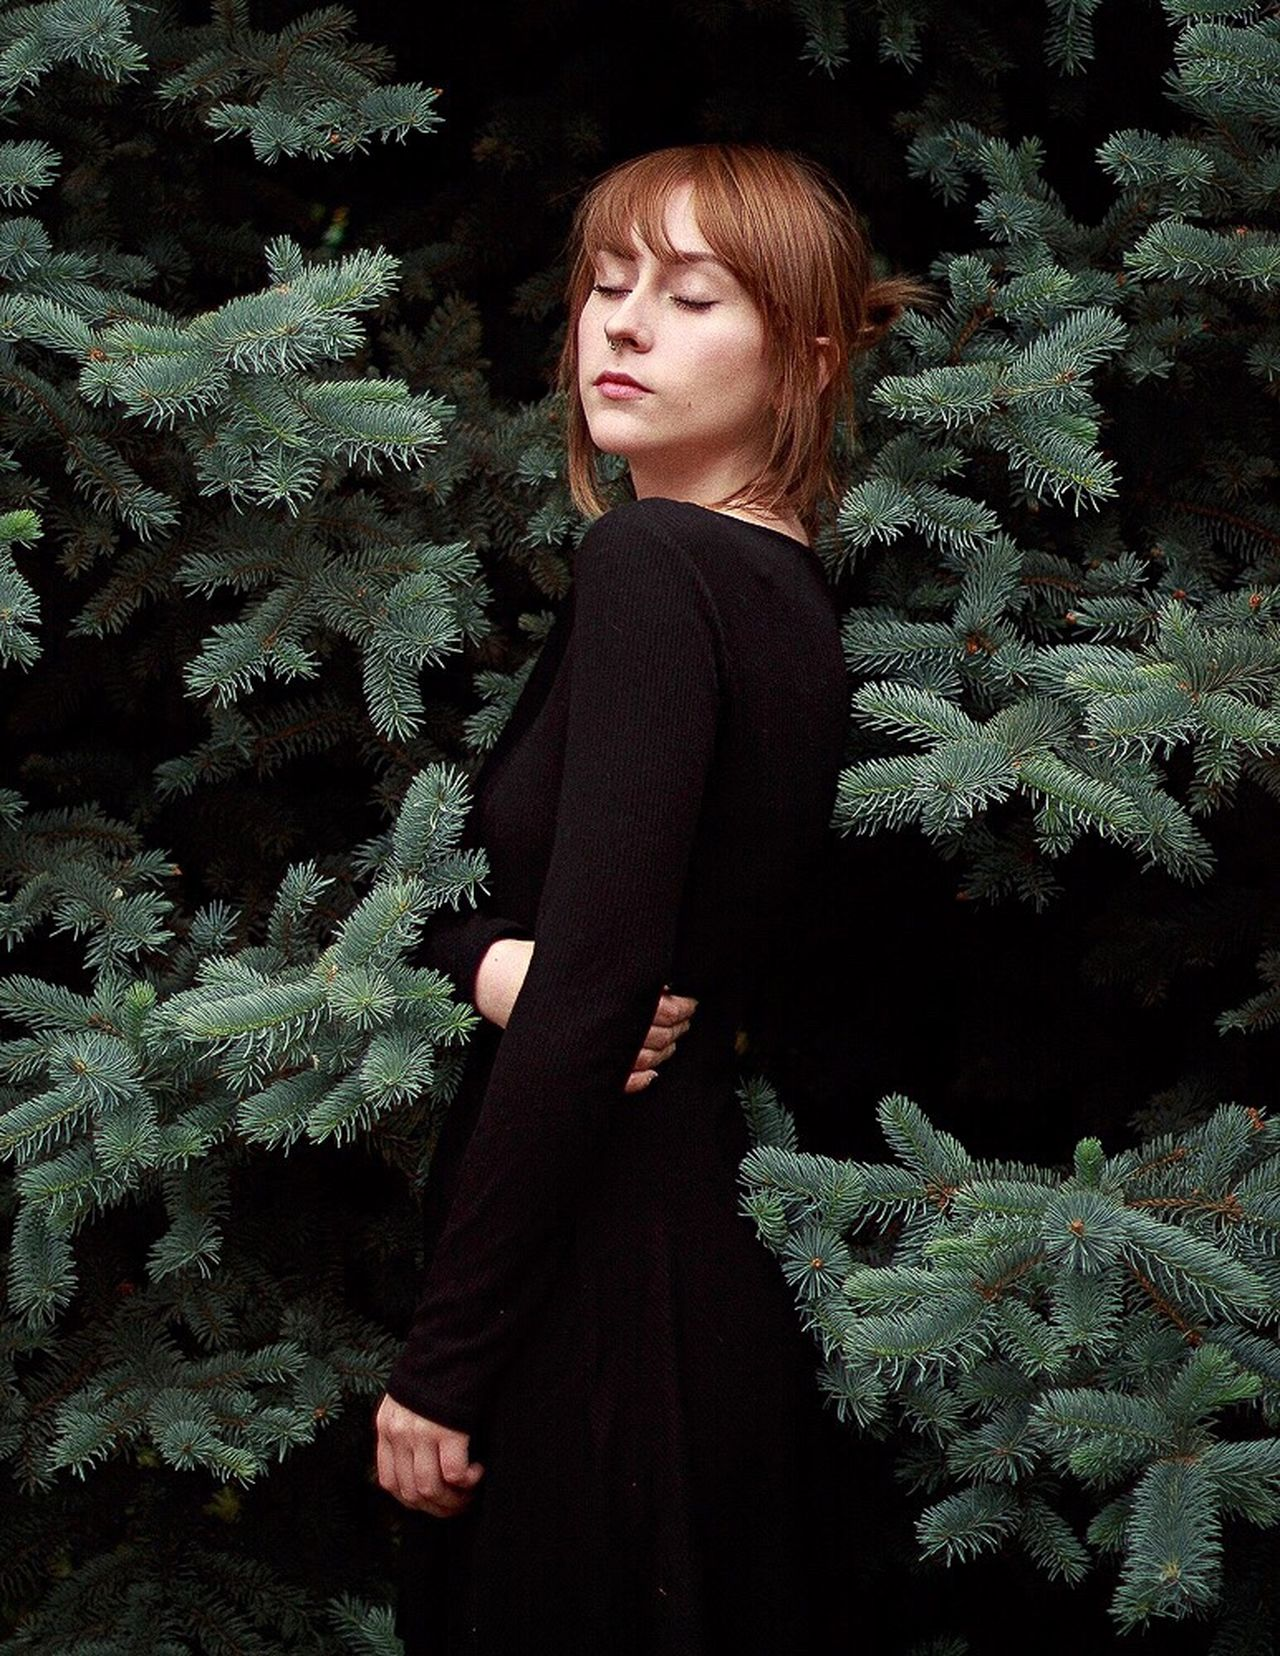 Young Women Person Nature Young Adult Chilena Chile Blomst Standing Beauty Front View Confidence  Outdoors Beautiful People